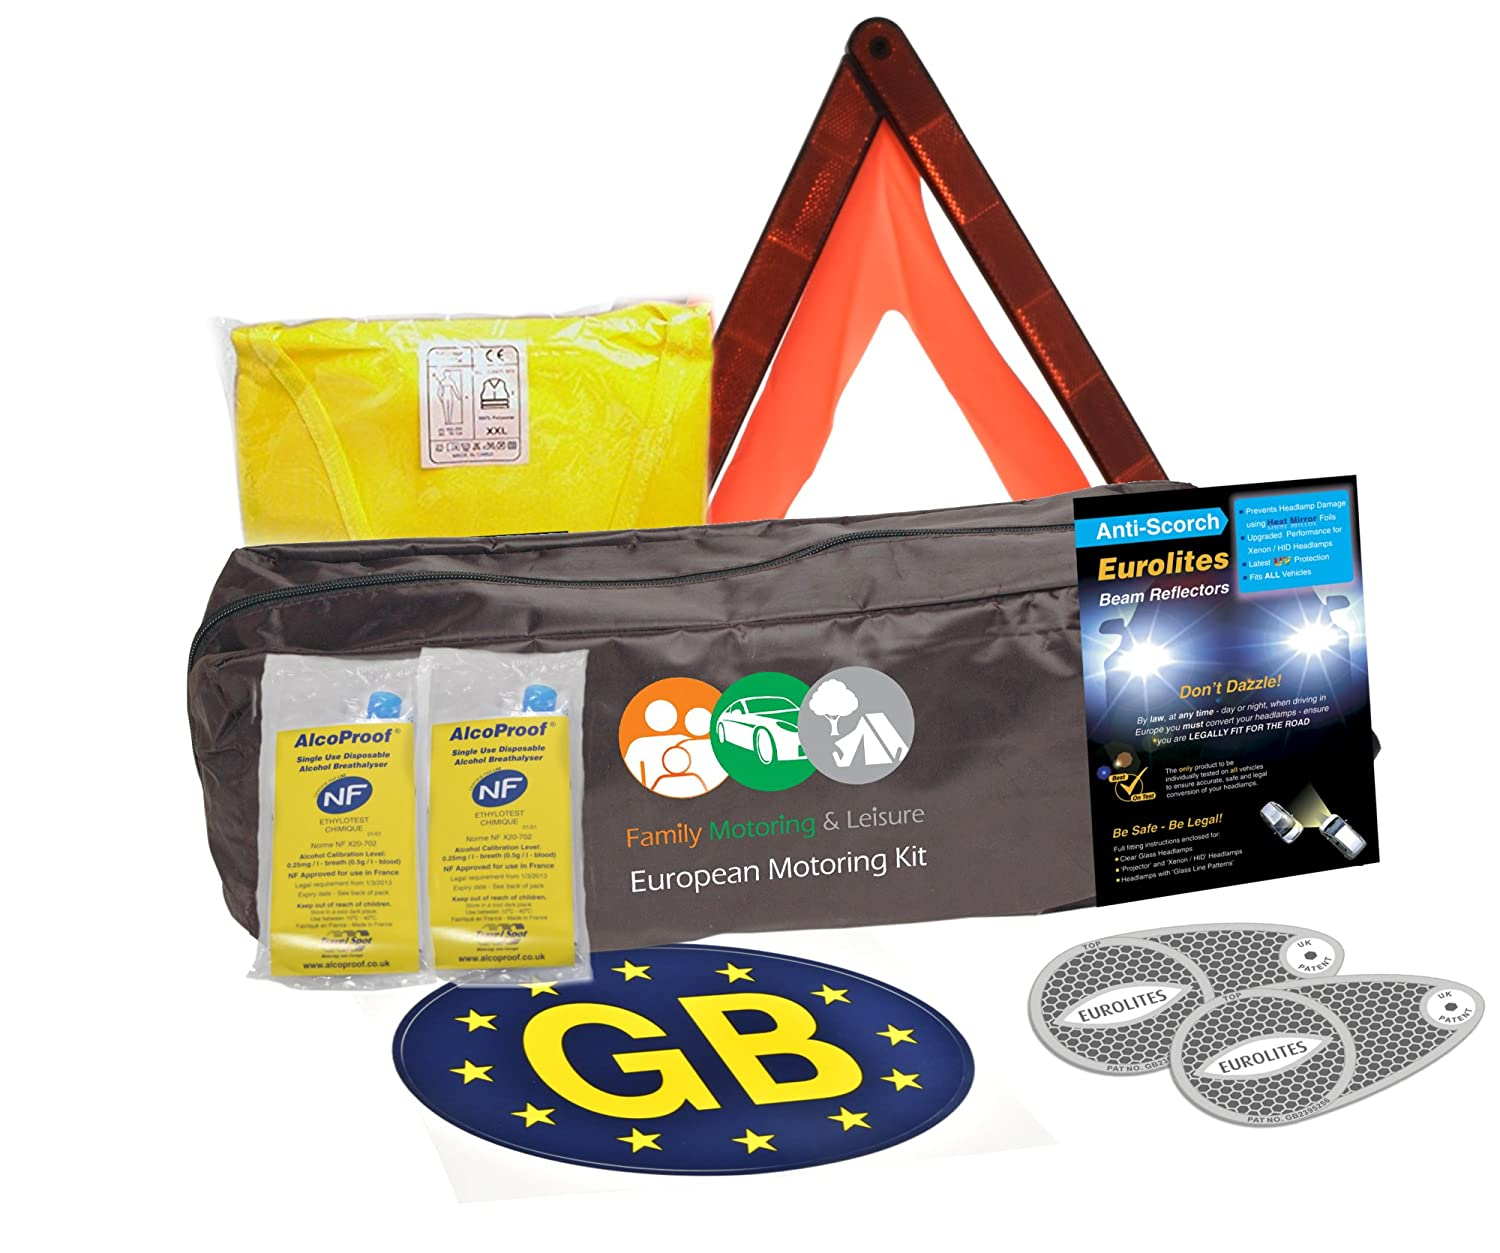 European Travel Motoring Kit For Driving In Europe With Euro GB Sticker & Twin Pack Breathlaysers